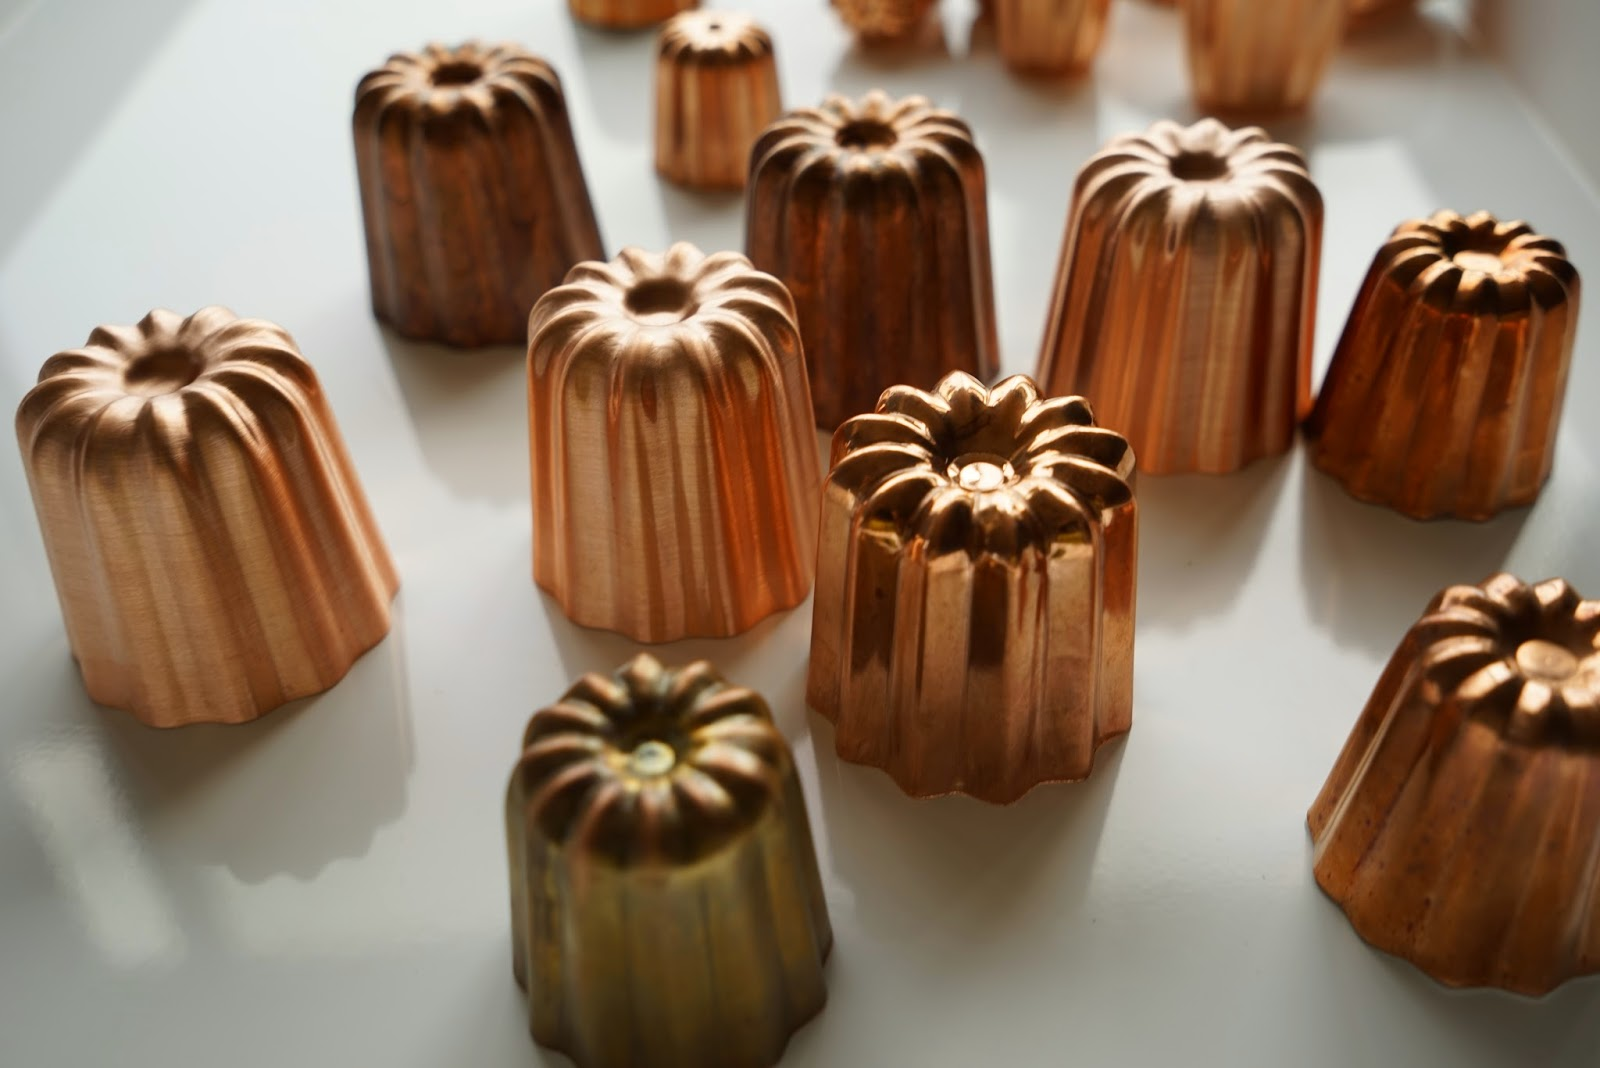 Canele will stand out when we use the real fresh plump and flexible ...